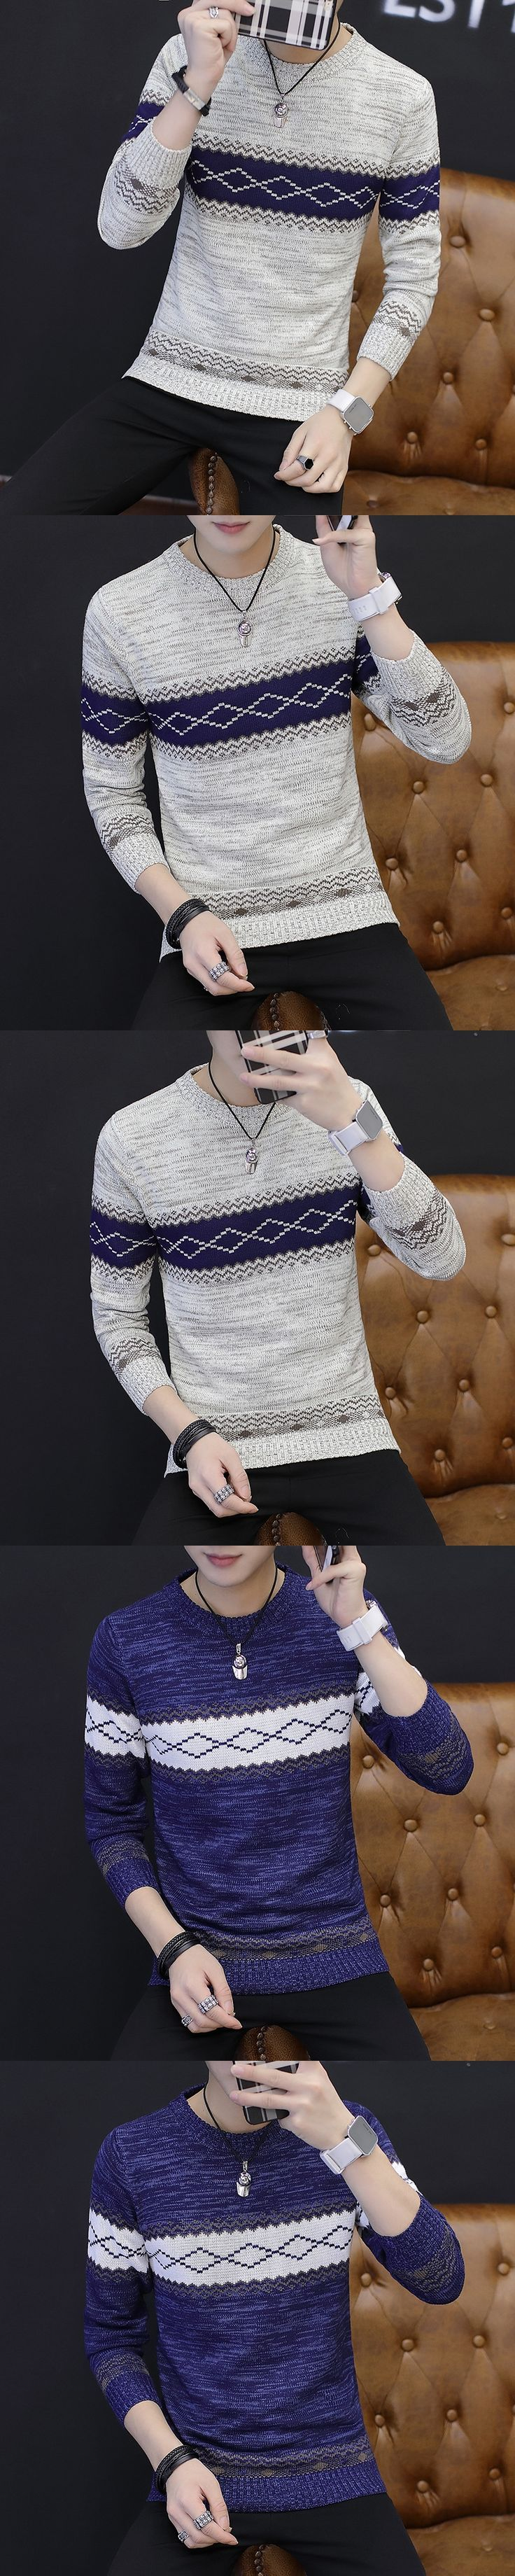 Pullover Male Mens Knitted Vests Diamond Pattern Sweater Men Sweaters Knitting Striped For 2017 Jumper Casual Social Vest m688